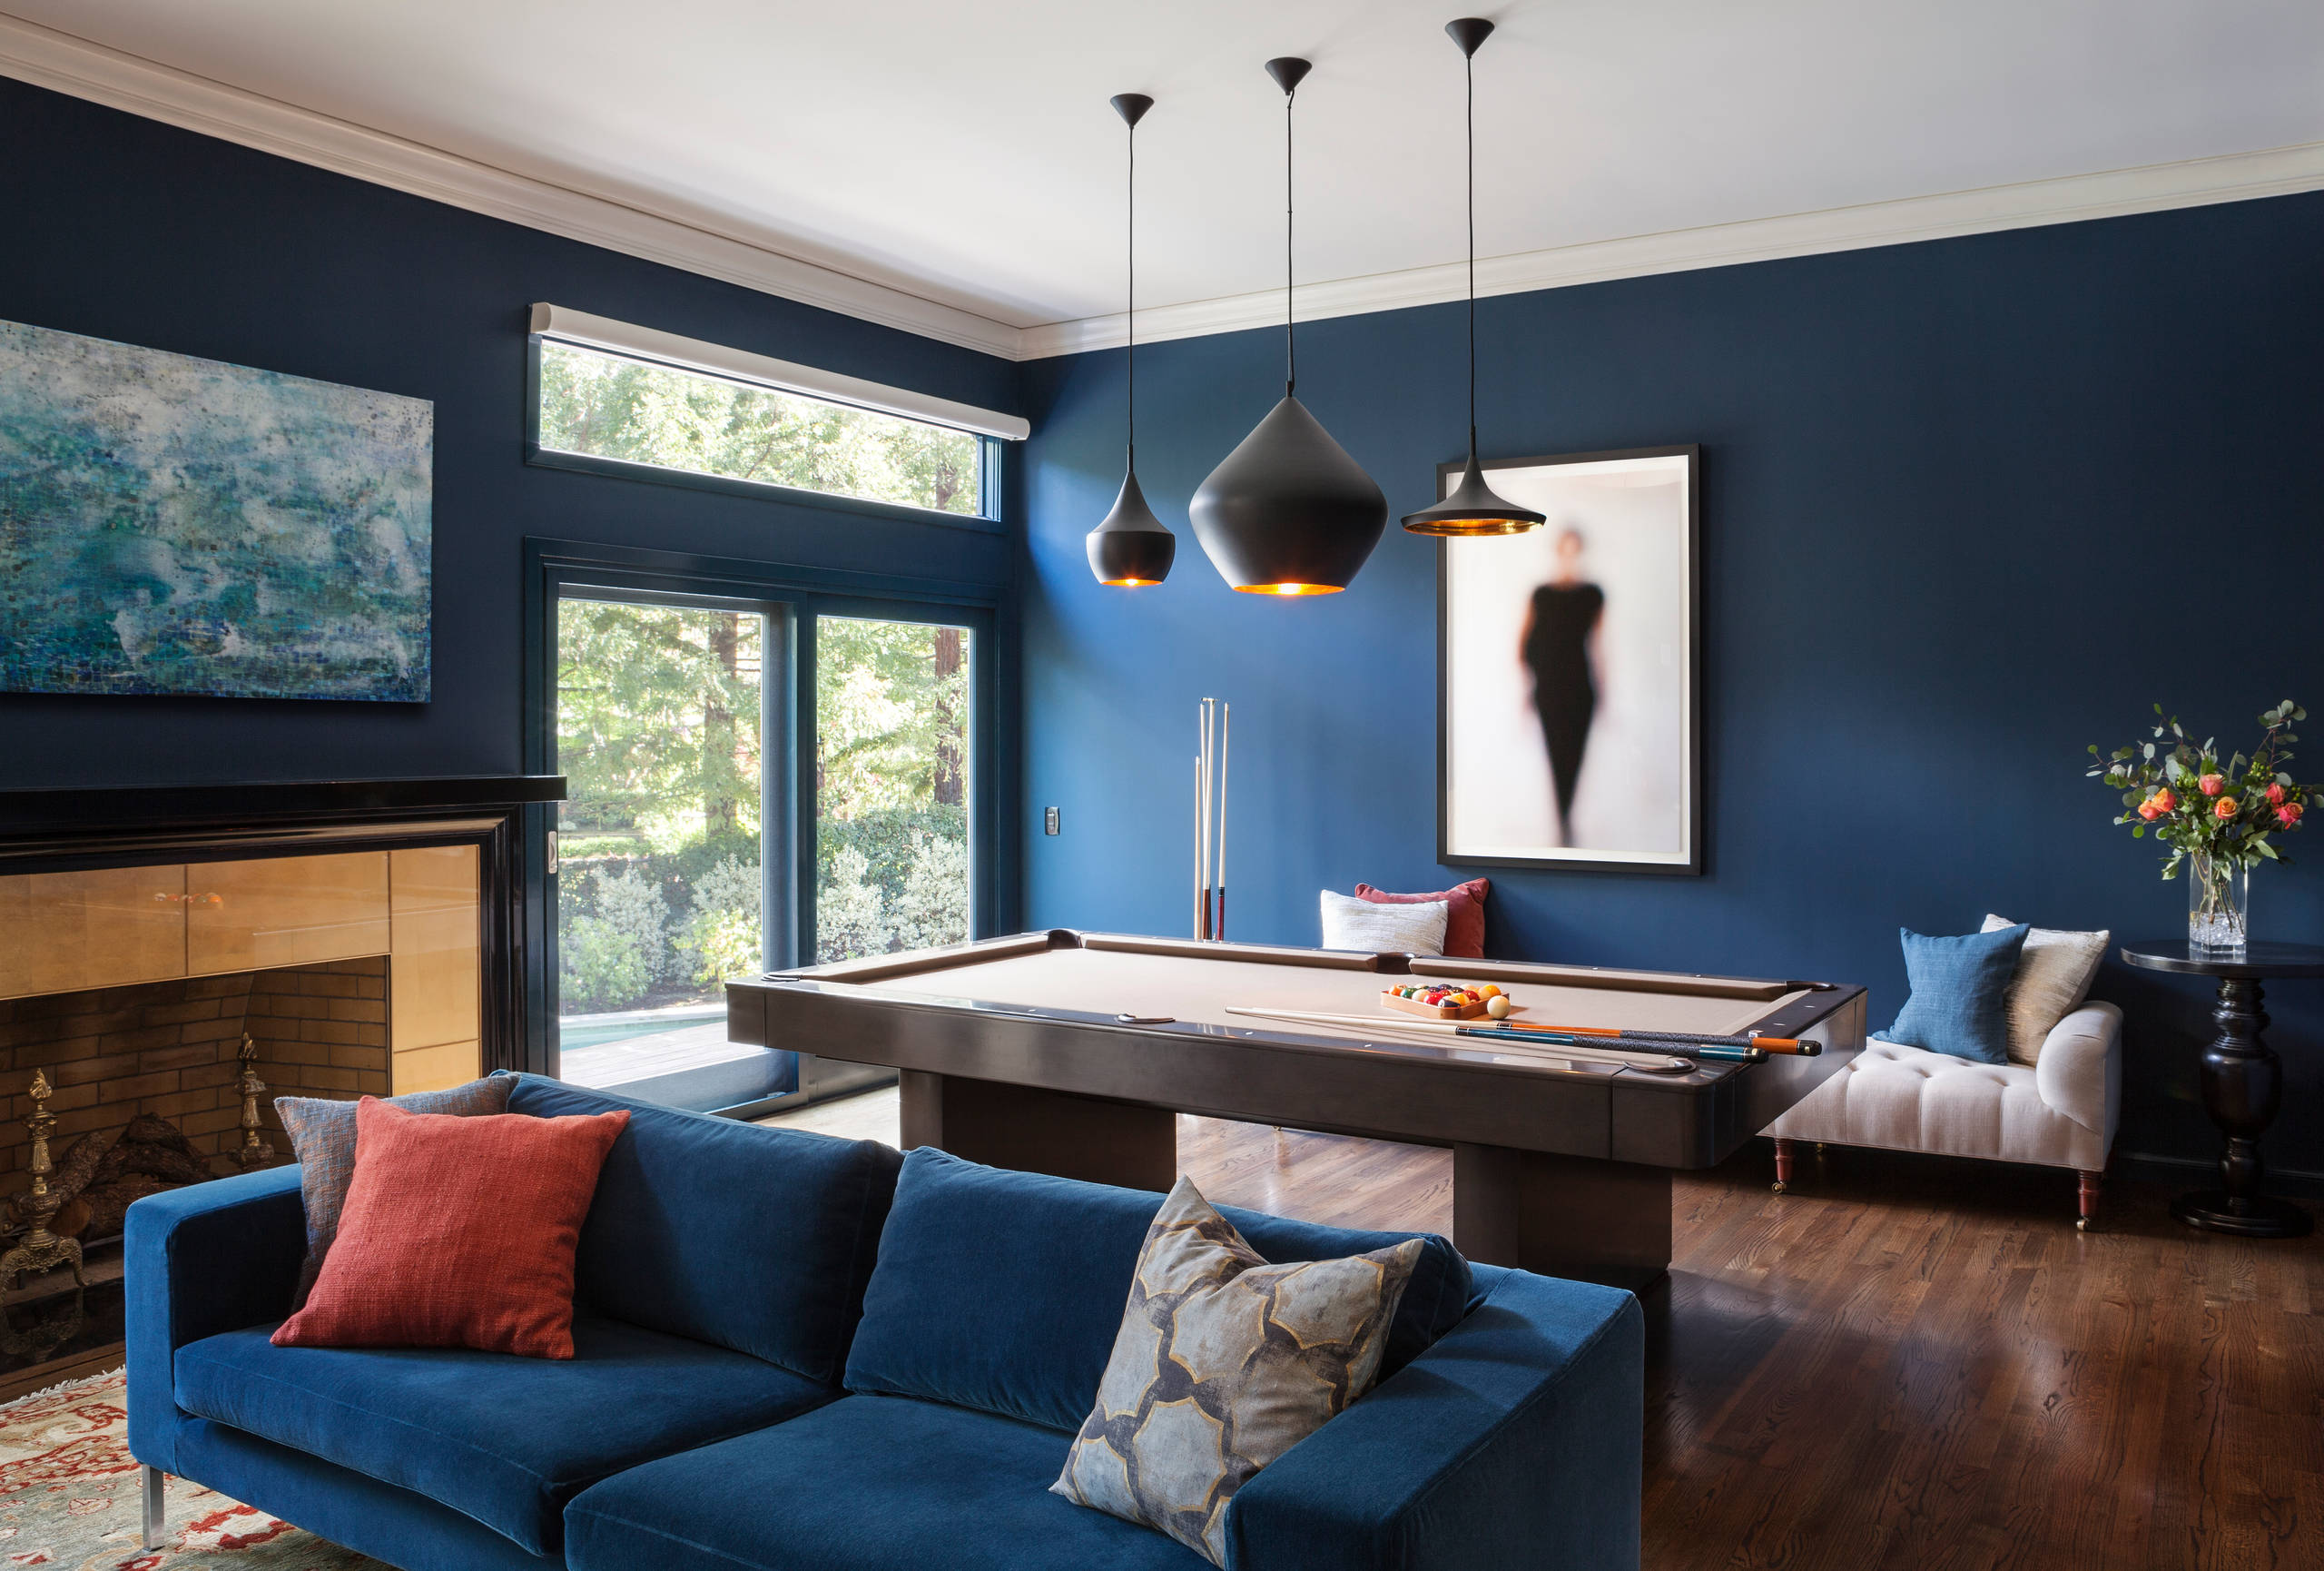 75 Beautiful Game Room Pictures Ideas May 2021 Houzz